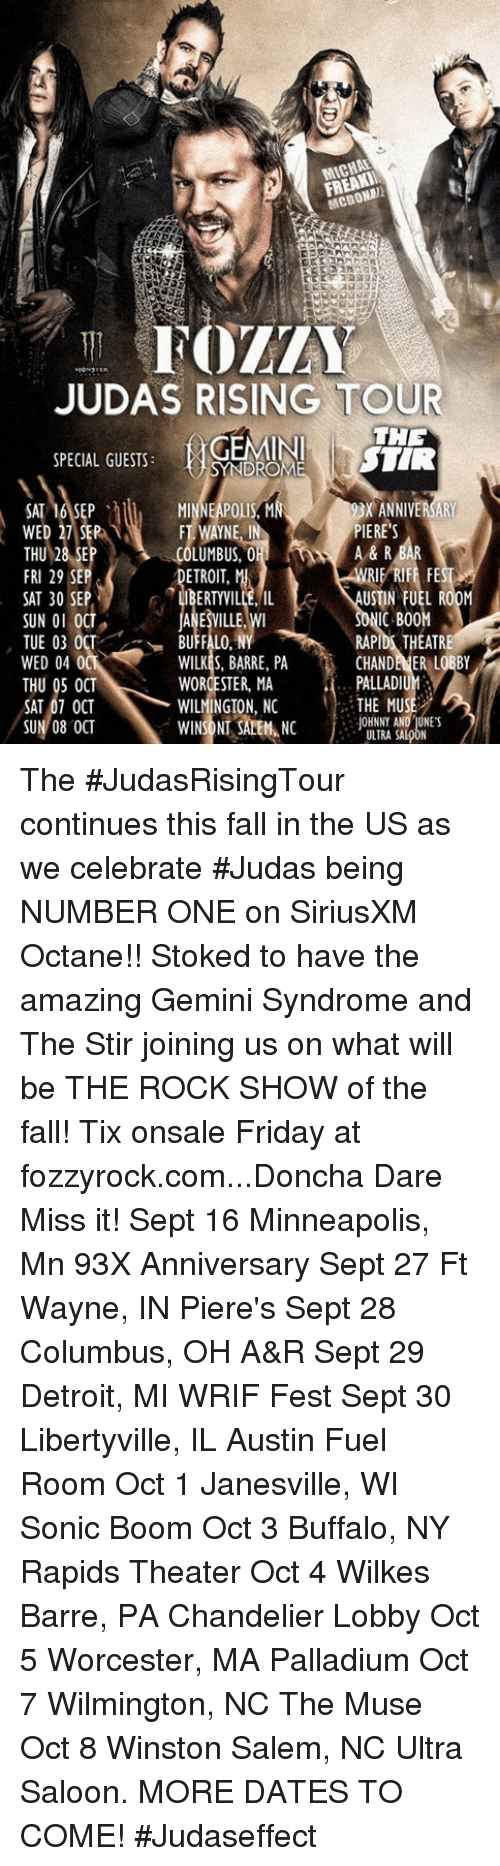 Detroit, Fall, and Friday: MICHA  JUDAS RISING TOUR  SPECIAL GUESTS:GEMINI HE  NDROM  ANNIVERSARY  SAT 16,SEP 、  WED  ERE'S  FT WAYNE,  PI  A & R  LUMBUS, 0  ETROIT, 반  FRI 29 SEP  SAT 30 SEP  SUN O1 OCT  TUE 03 OCT  WED 04 0  THU 05 OCT  SAT 07 OCT  SUN/08 OCT  RIE RIFE FE  1.  USTIN FUEL RO0M  RAPIDS THEATRE  PALLADIUM  JOHNNY AND UNES  LIBERTYVILLE, IL  ANESVILLE W  BUFFALO, N  WILKES, BARRE, PA  WORCESTER, MA  WILMINGTON, NC 1.. THE MUSE  NONNA  ULTRAA The #JudasRisingTour continues this fall in the US as we celebrate #Judas being NUMBER ONE on SiriusXM Octane!! Stoked to have the amazing Gemini Syndrome and The Stir joining us on what will be THE ROCK SHOW of the fall! Tix onsale Friday at fozzyrock.com...Doncha Dare Miss it!  Sept 16 Minneapolis, Mn 93X Anniversary Sept 27 Ft Wayne, IN Piere's Sept 28 Columbus, OH A&R Sept 29 Detroit, MI WRIF Fest Sept 30 Libertyville, IL Austin Fuel Room Oct 1 Janesville, WI Sonic Boom Oct 3 Buffalo, NY Rapids Theater Oct 4 Wilkes Barre, PA Chandelier Lobby Oct 5 Worcester, MA Palladium Oct 7 Wilmington, NC The Muse Oct 8 Winston Salem, NC Ultra Saloon. MORE DATES TO COME! #Judaseffect